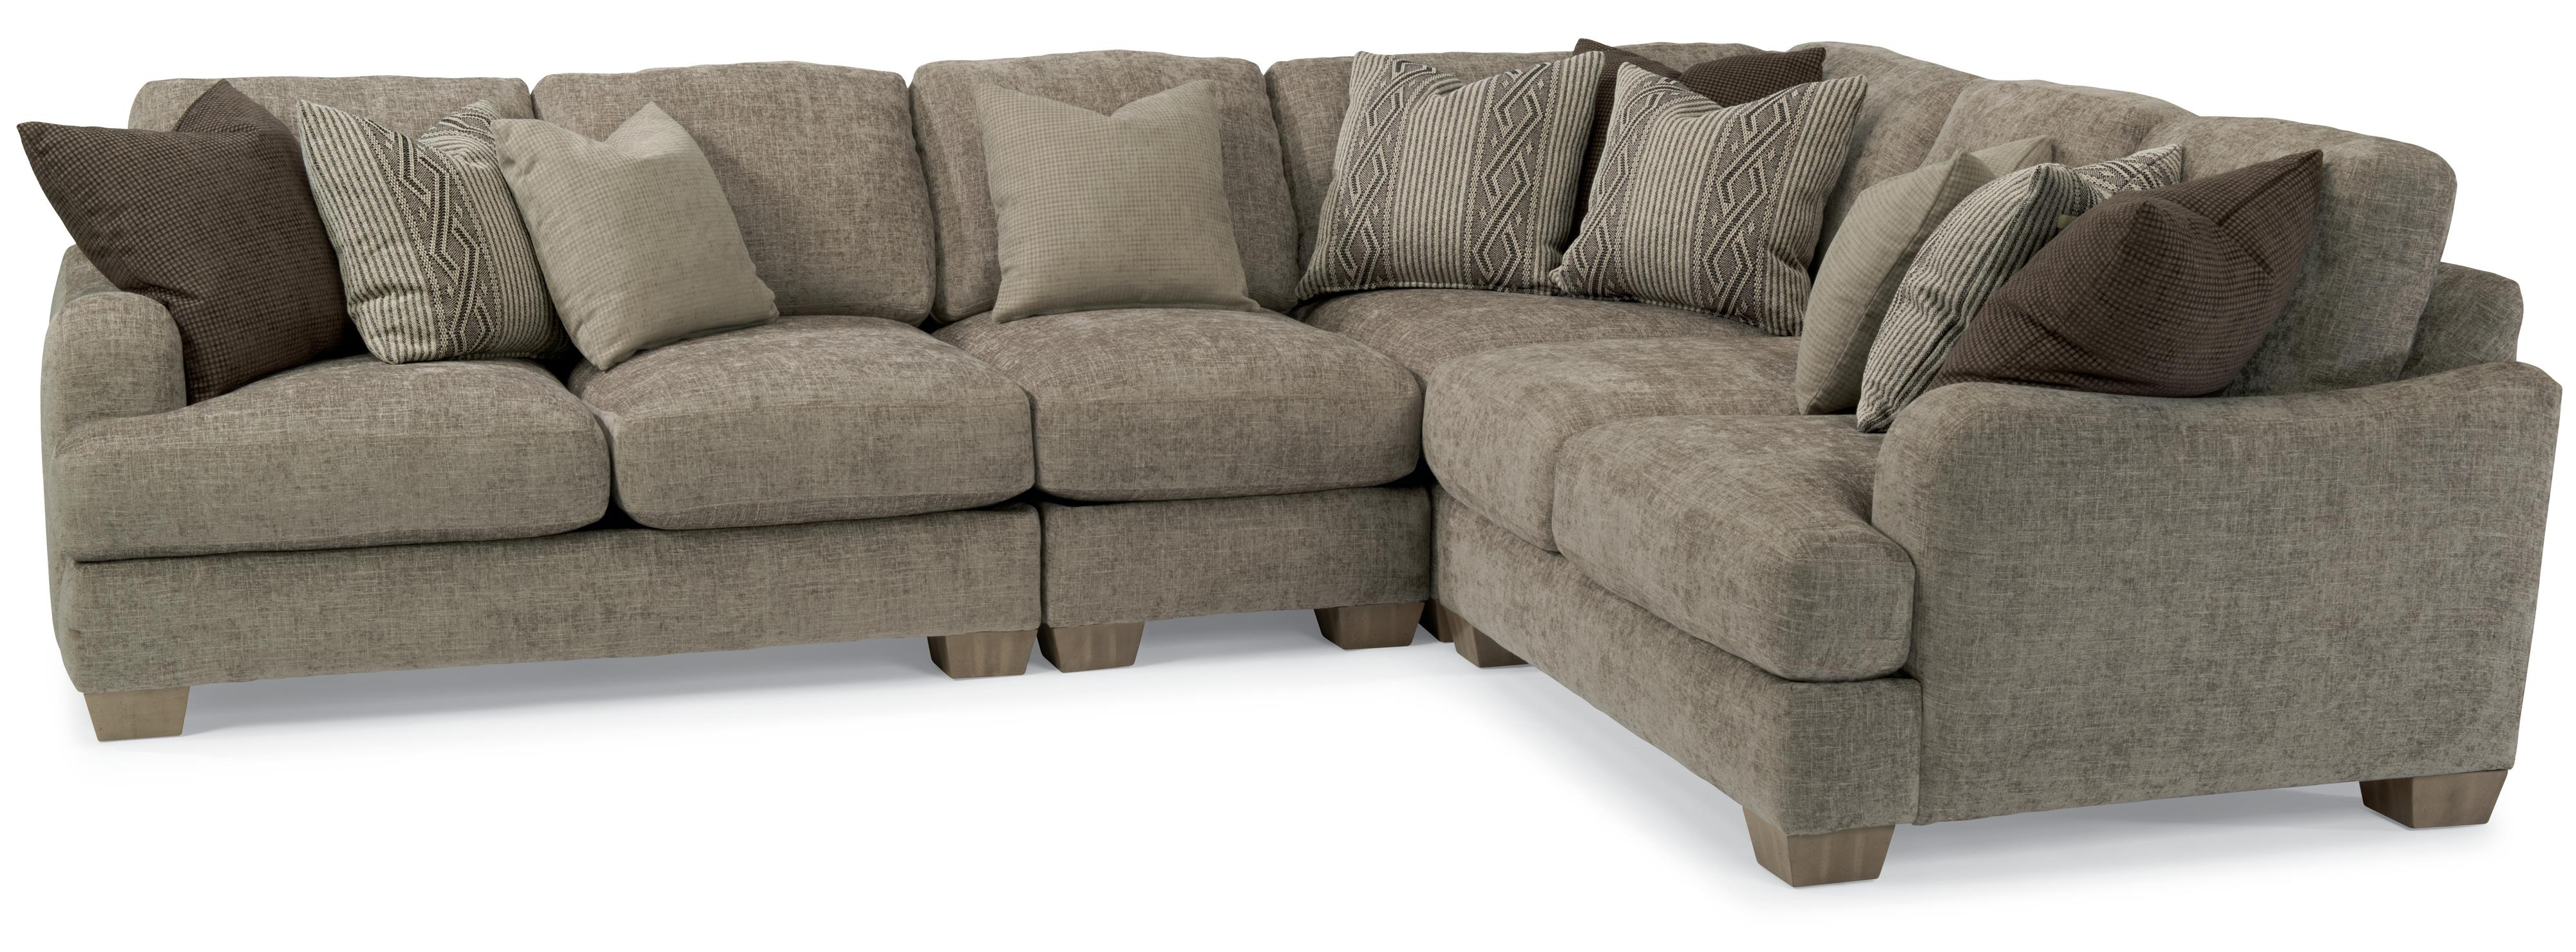 Vanessa Sectional Sofa With Loose Pillow Backflexsteel Throughout Fashionable Kansas City Sectional Sofas (View 7 of 20)